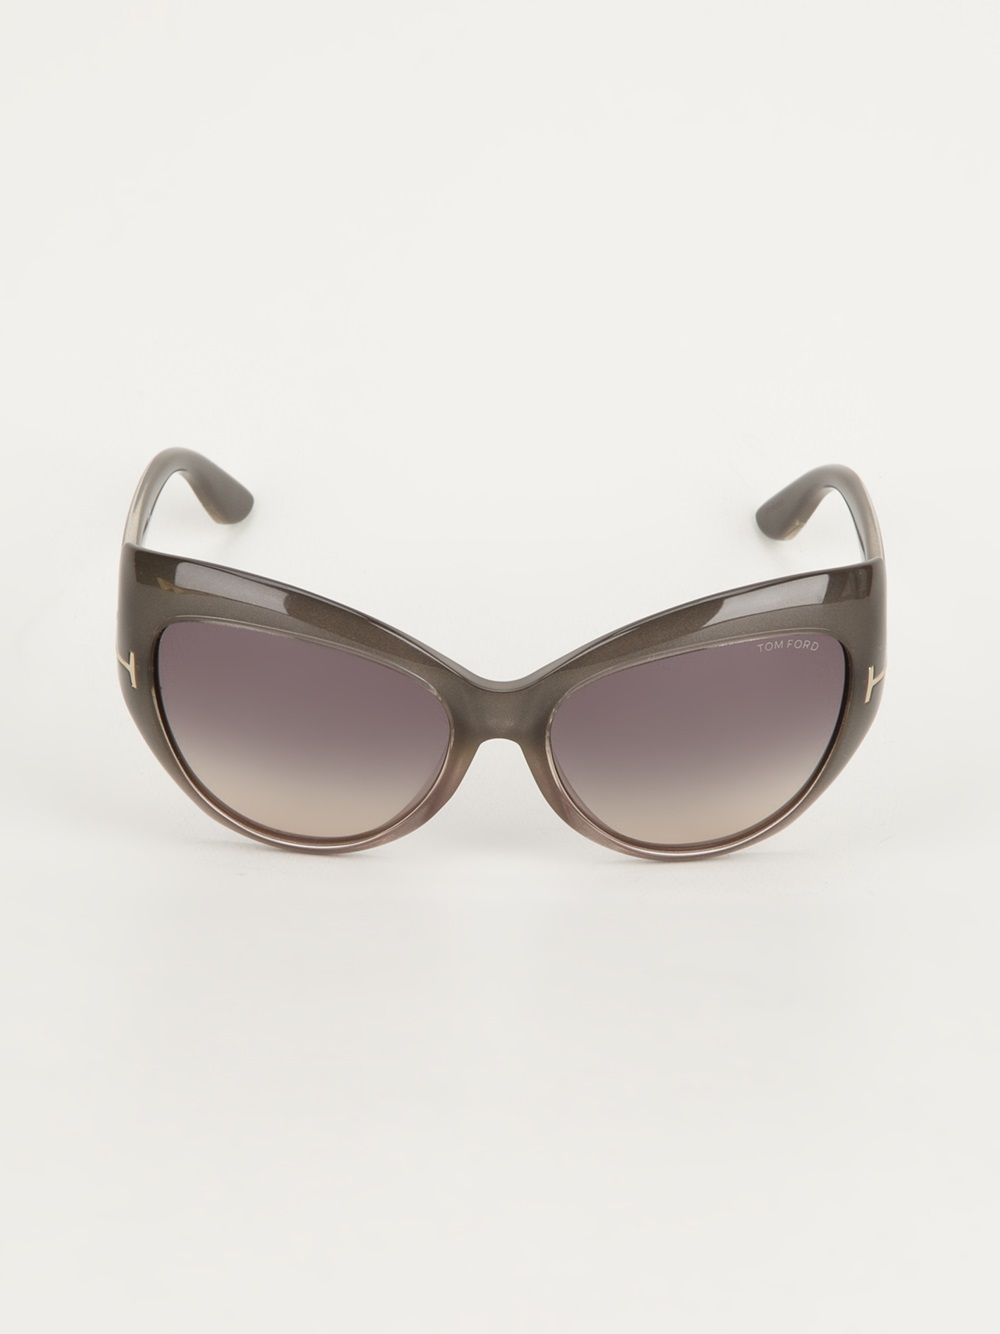 Tom Ford Cat Sunglasses In Gray Lyst